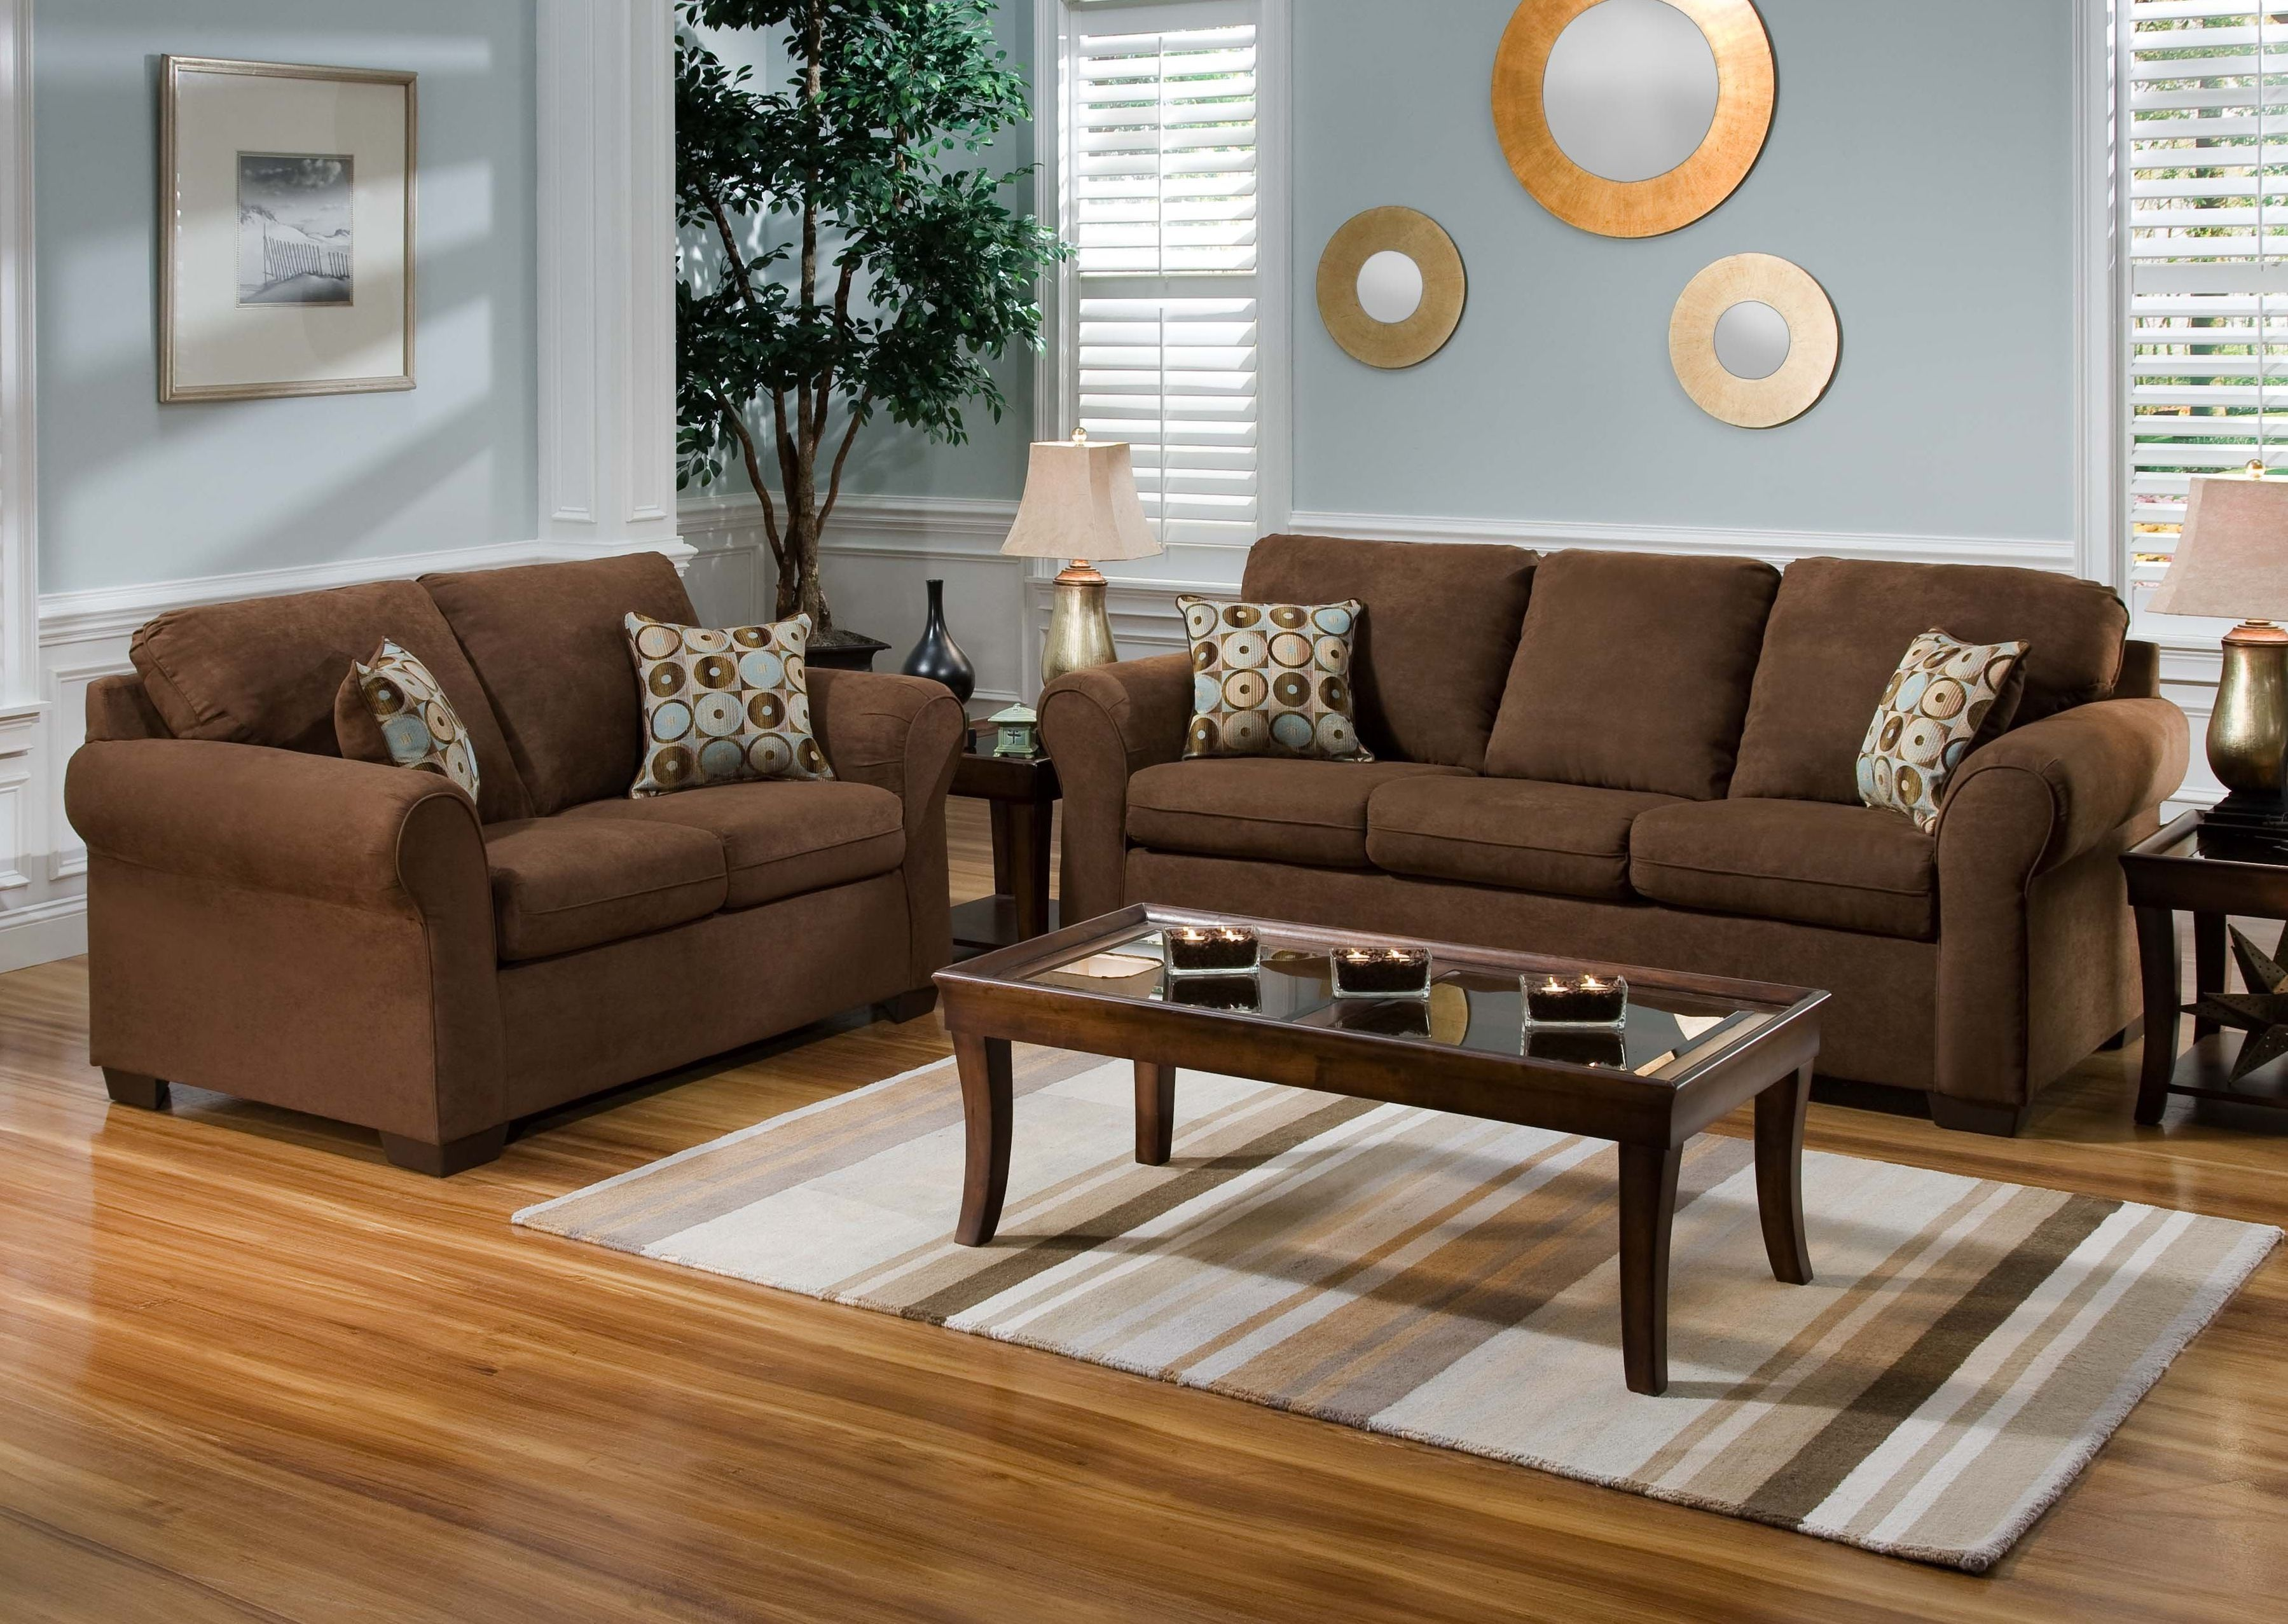 Living Room Design With Brown Leather Sofa  Httpclubmaraton Beauteous Leather Couch Living Room Design Design Decoration